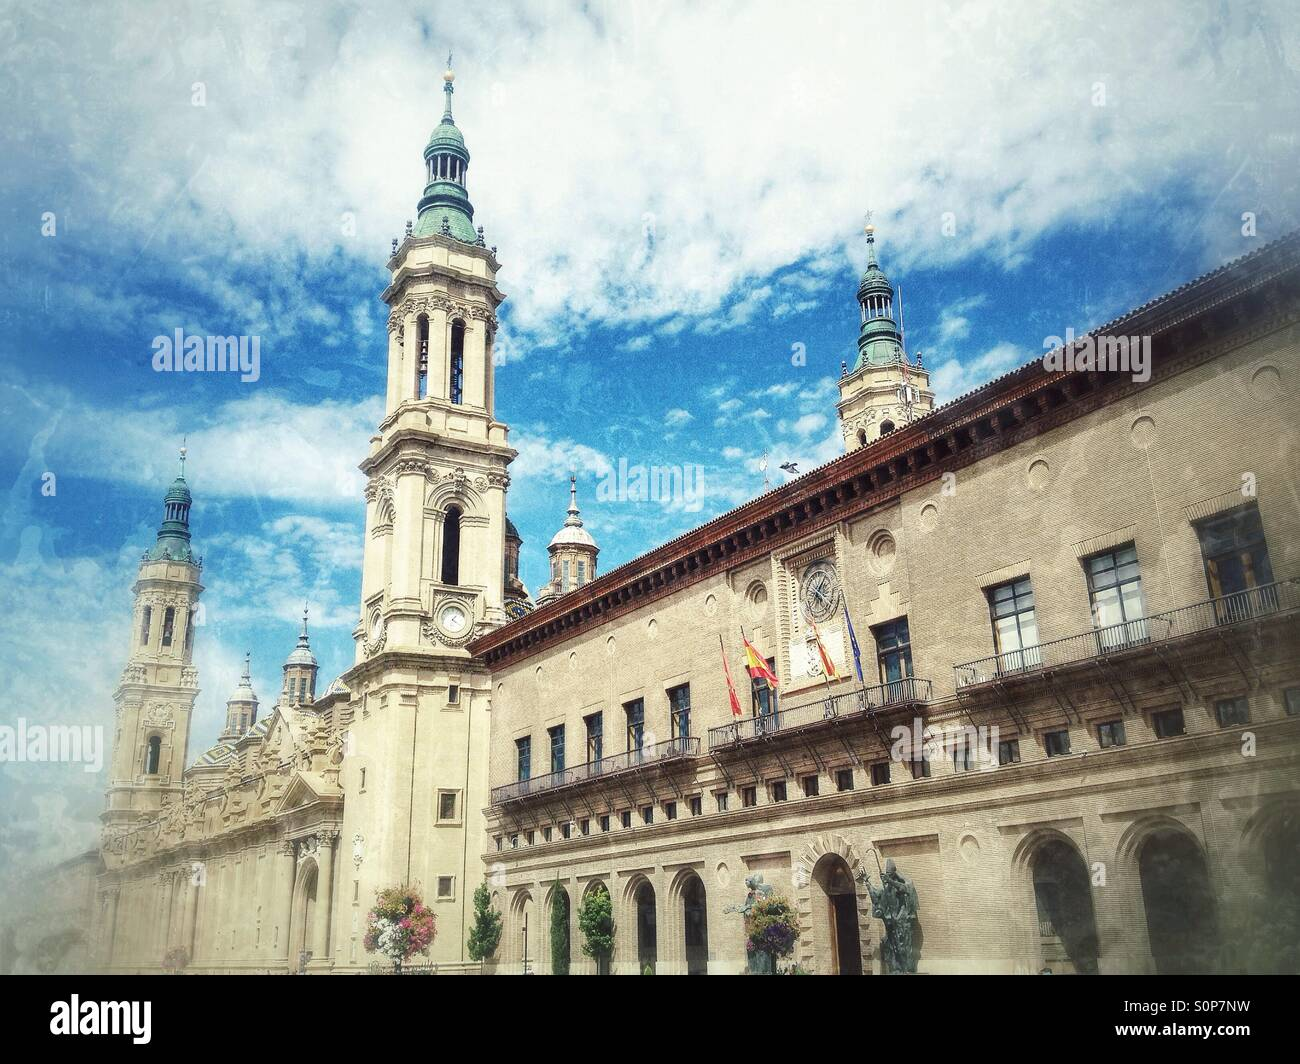 View of the Basilica of Our Lady of the Pillar and the city hall in Zaragoza, Spain - Stock Image